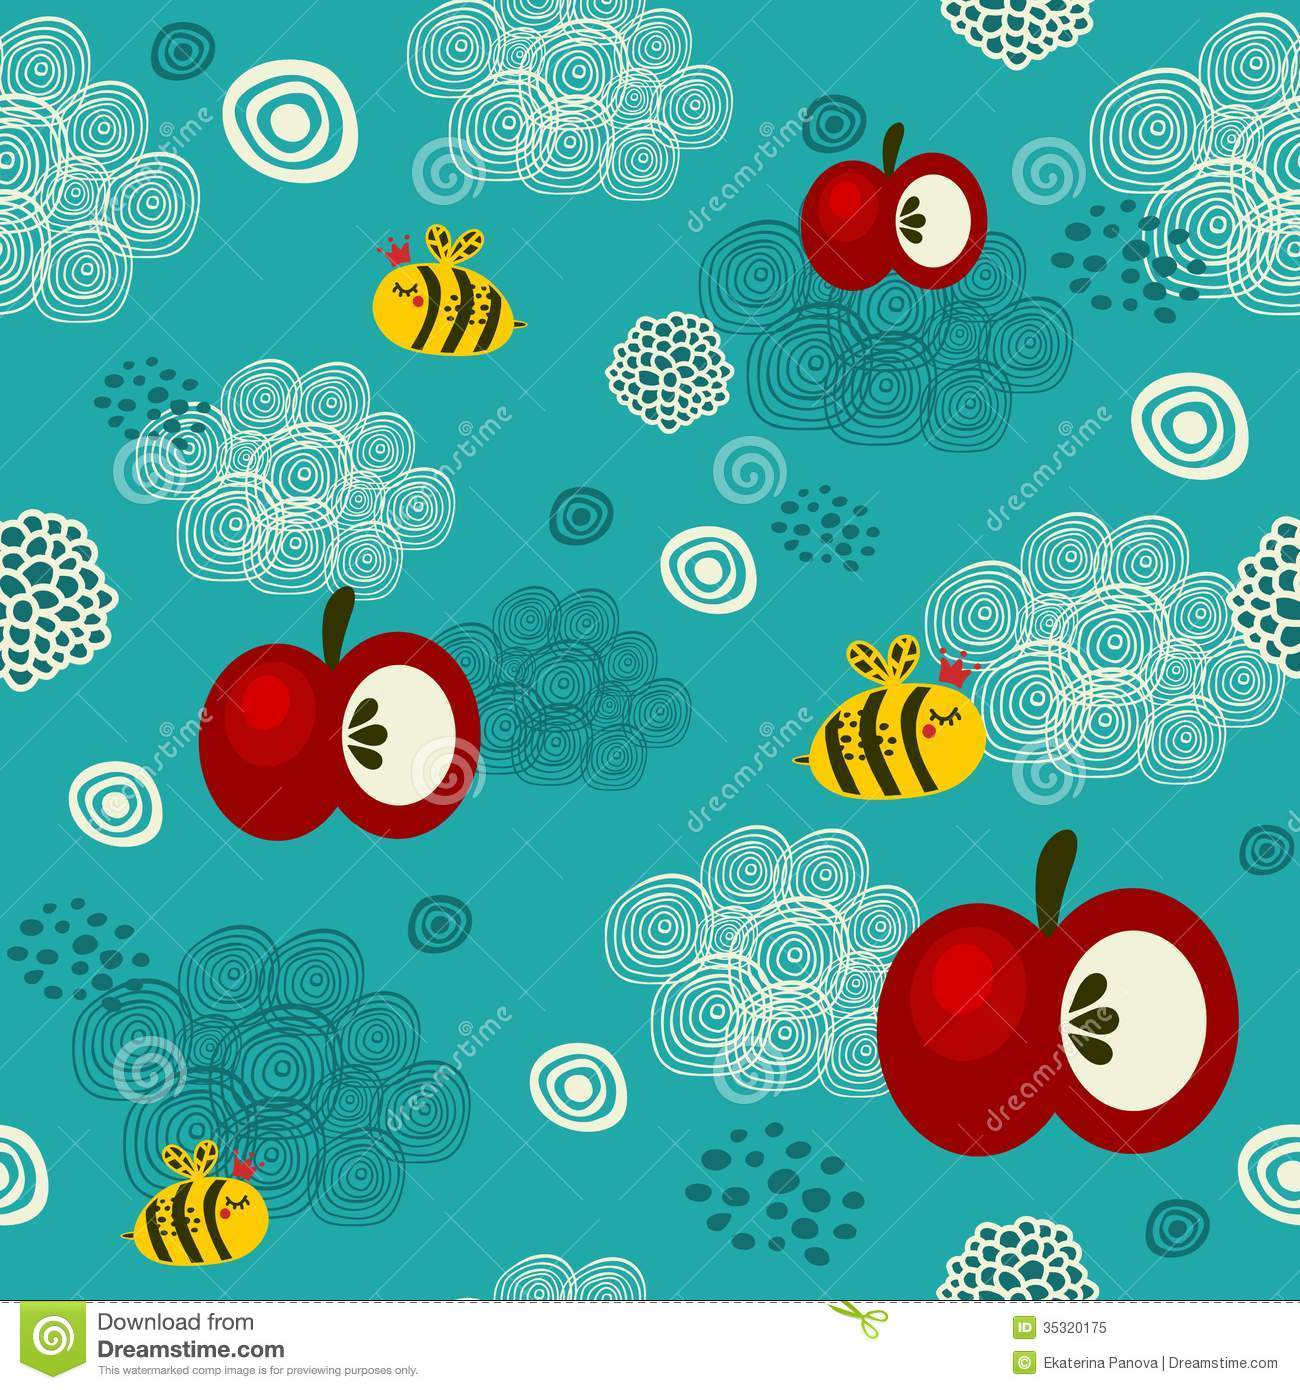 Bed sheet texture seamless - Bee And Apple Seamless Texture Royalty Free Stock Photo